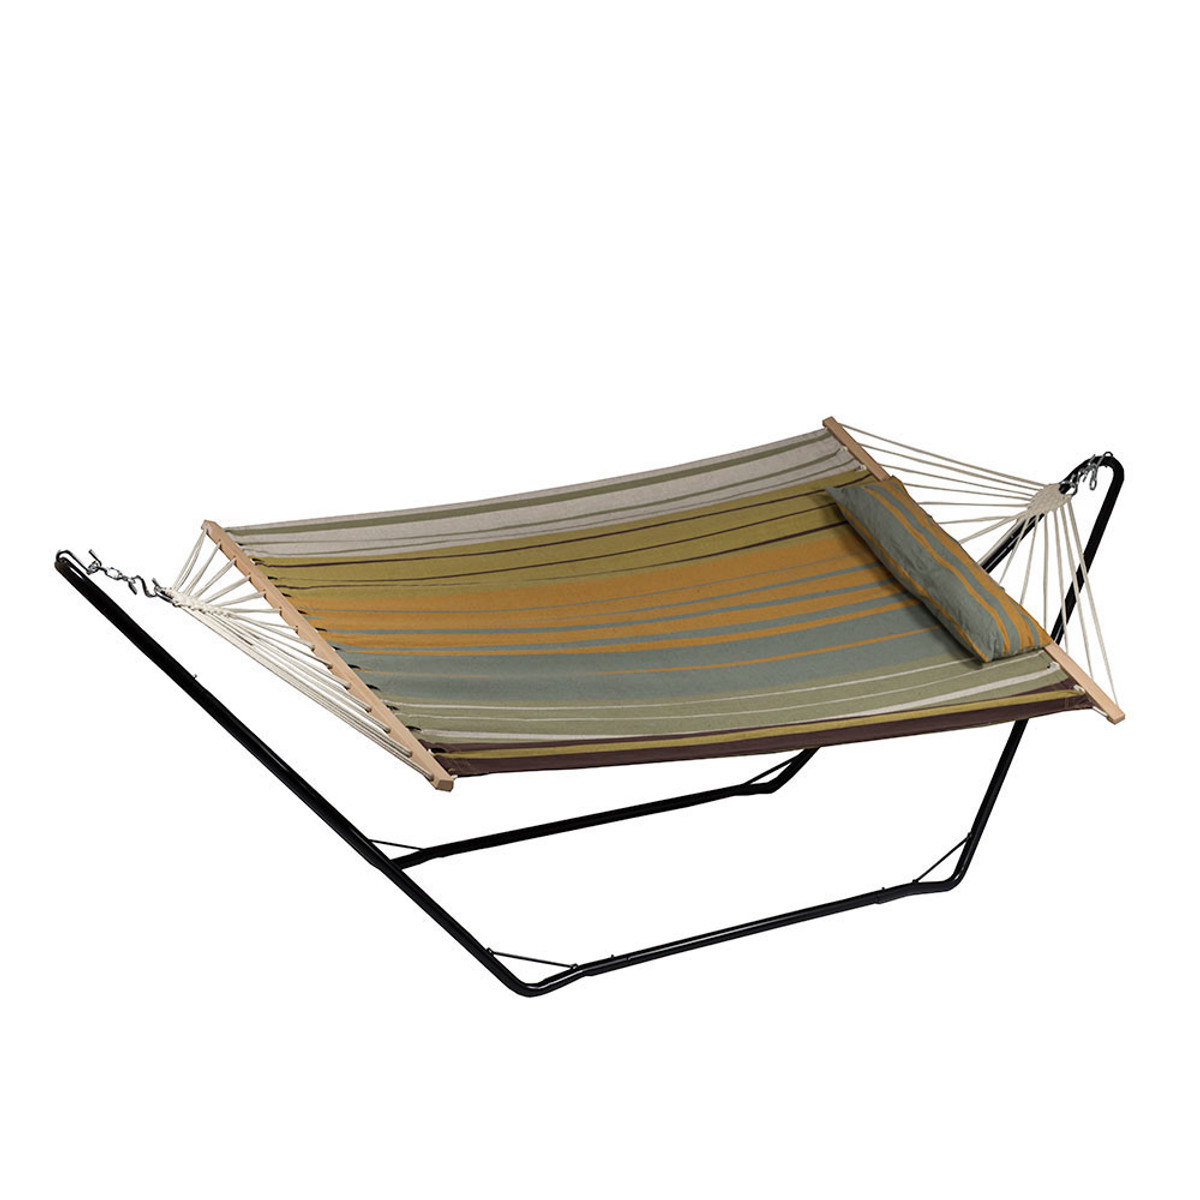 Sunnydaze Cotton Fabric Hammock And Detachable Pillow With 10 Foot